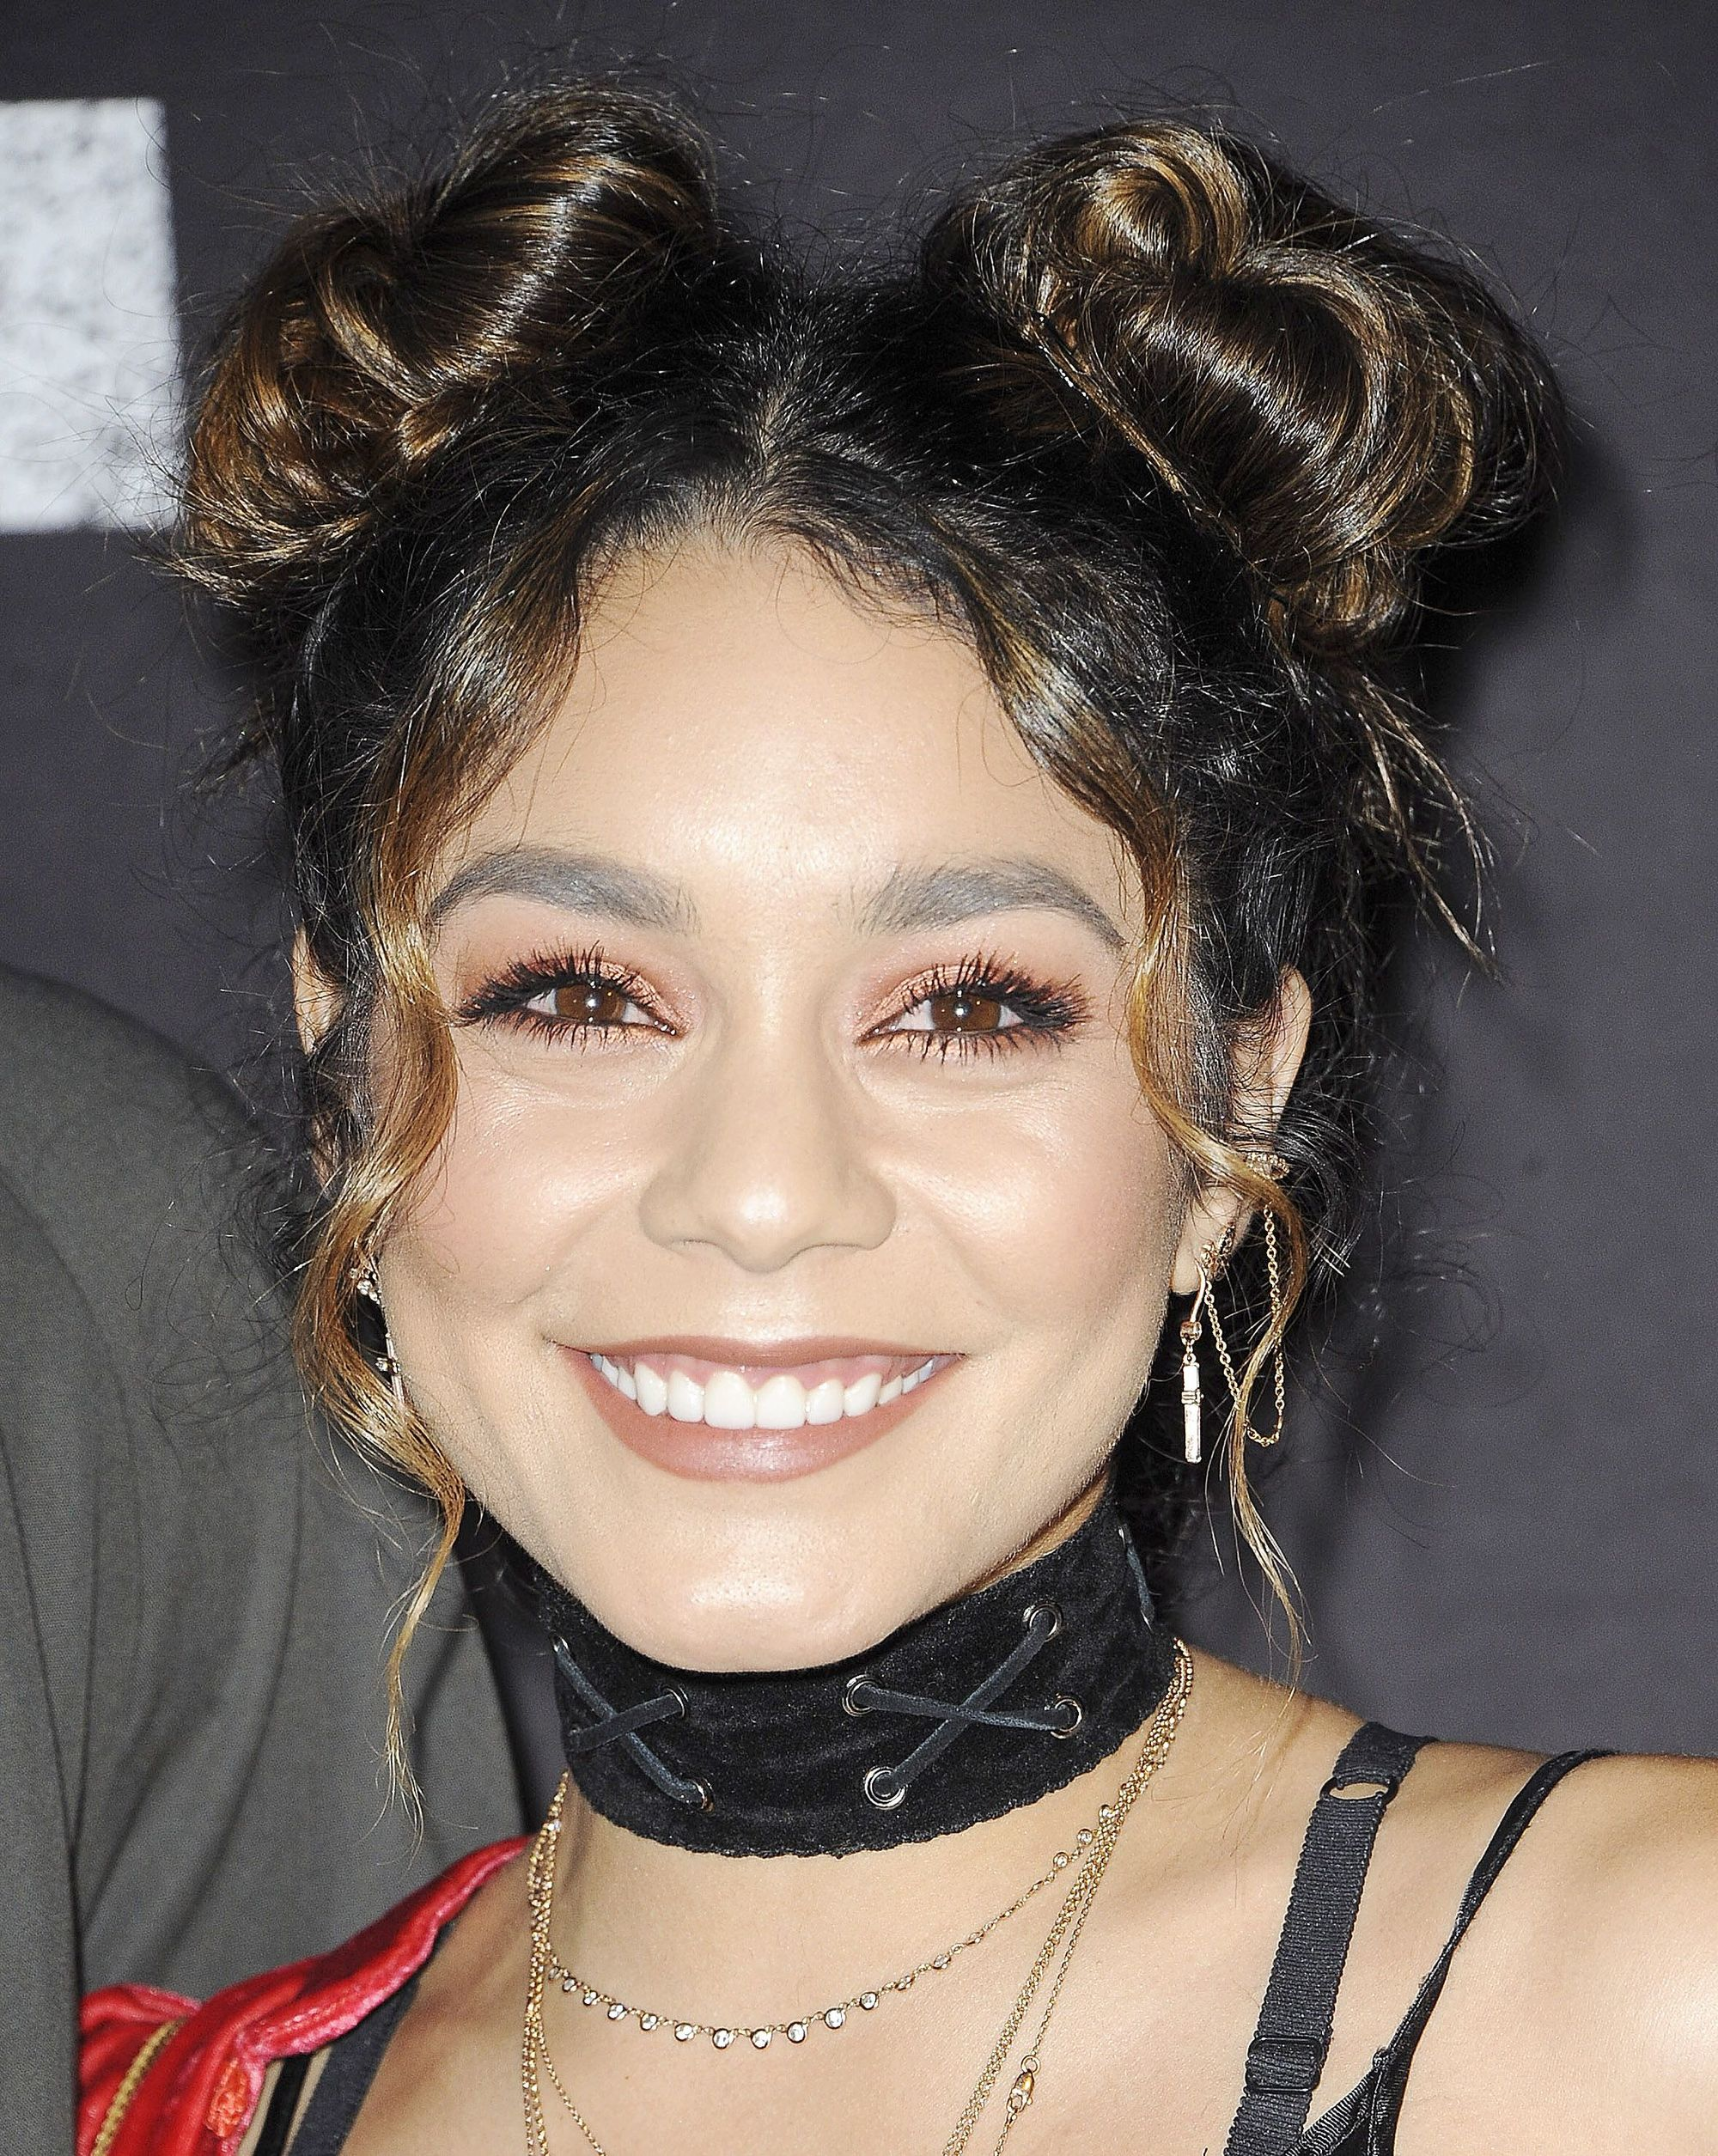 90s hairstyles: Vanessa Hudgens space buns hairstyle with loose tendrils along the hairline